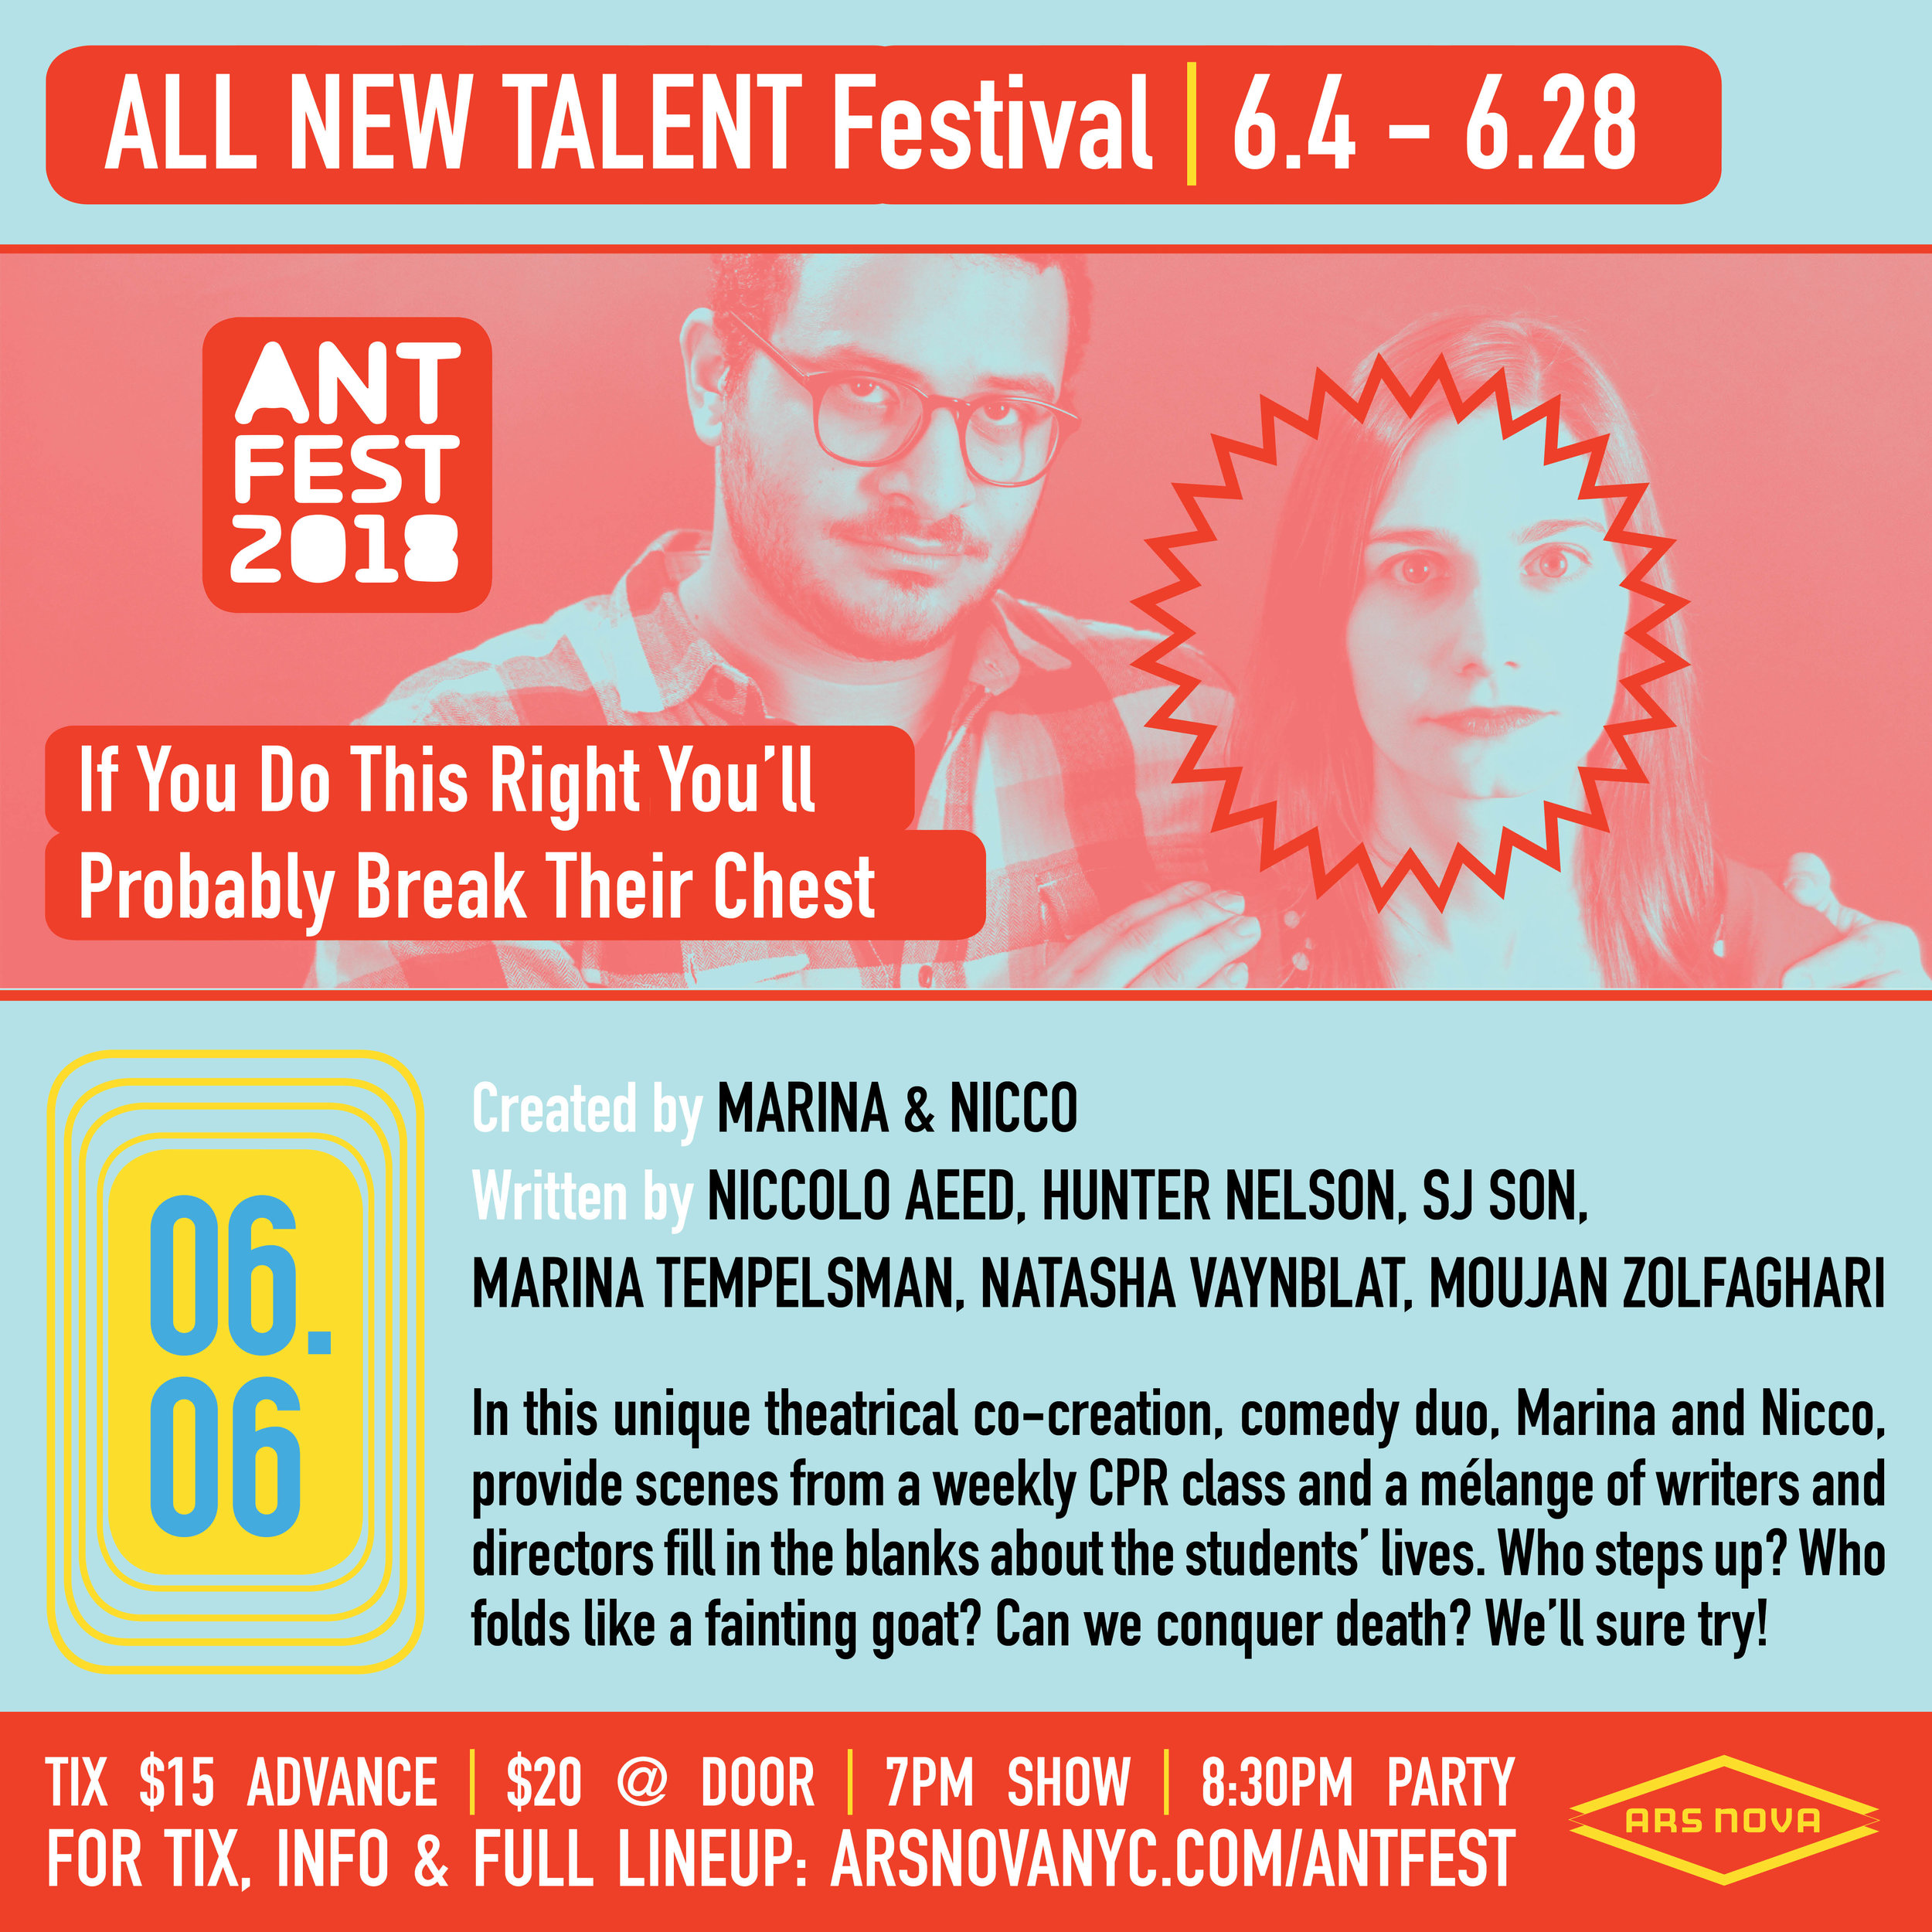 Marina & Nicco at Ars Nova ANT Fest! - You can catch our collaboratively created play If You Do This Right You'll Probably Break Their Chestat Ars Nova's ANT Fest on June 6th, 2018!Ars Nova does incredible, innovative work, and we're so proud to be included in ANT Fest (Ars Nova's Festival for All New Talent).Get your tickets here!